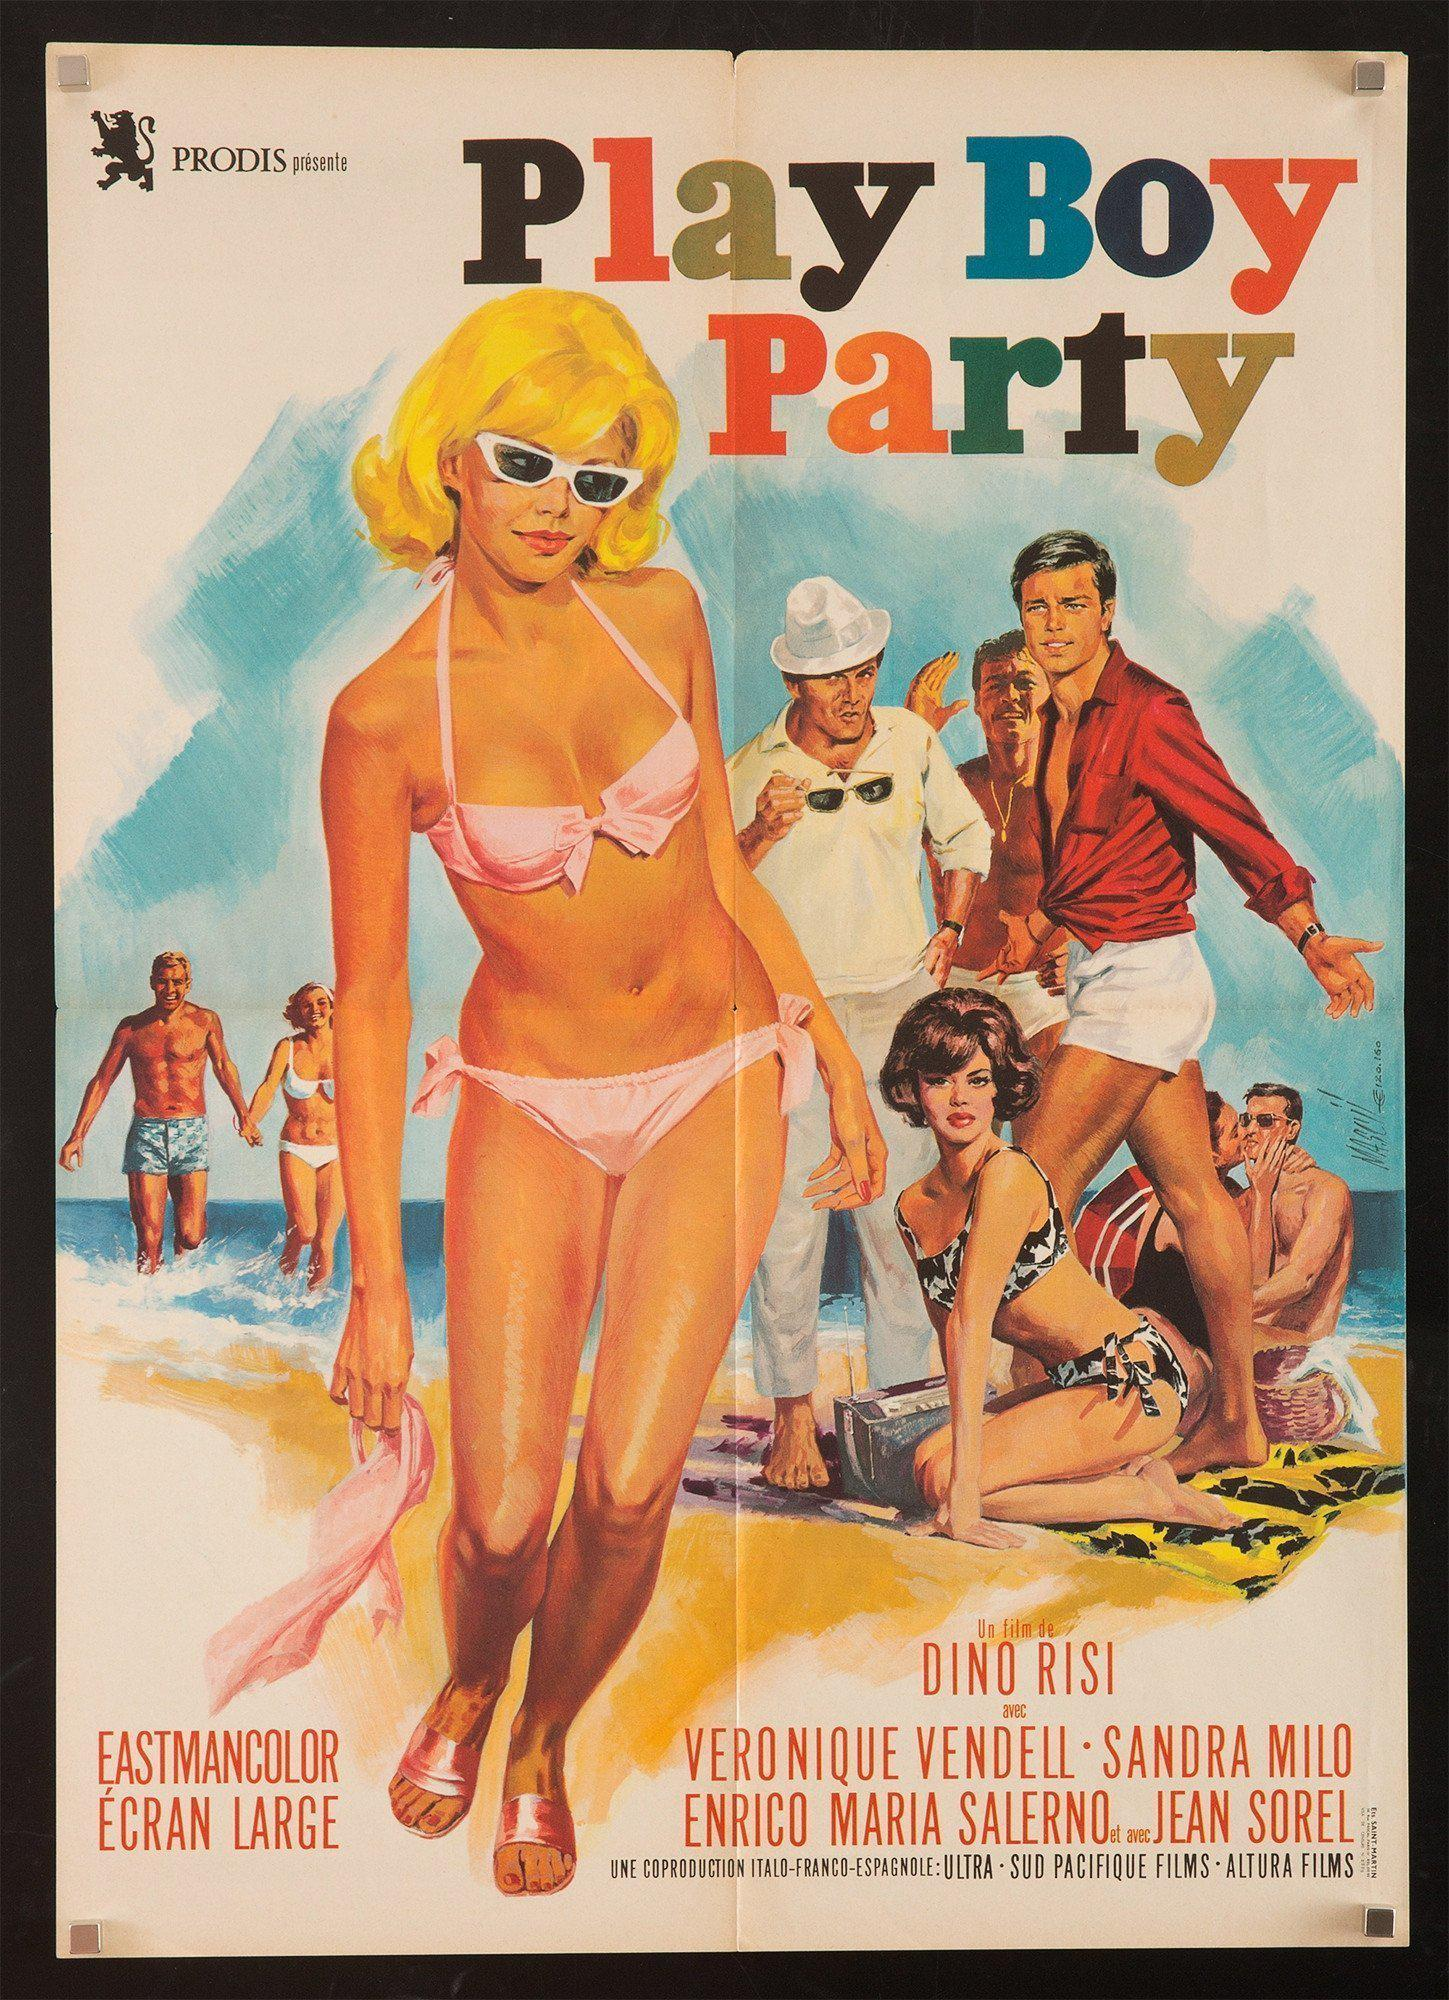 Play-boy Party (Playboy) French small (23x32) Original Vintage Movie Poster